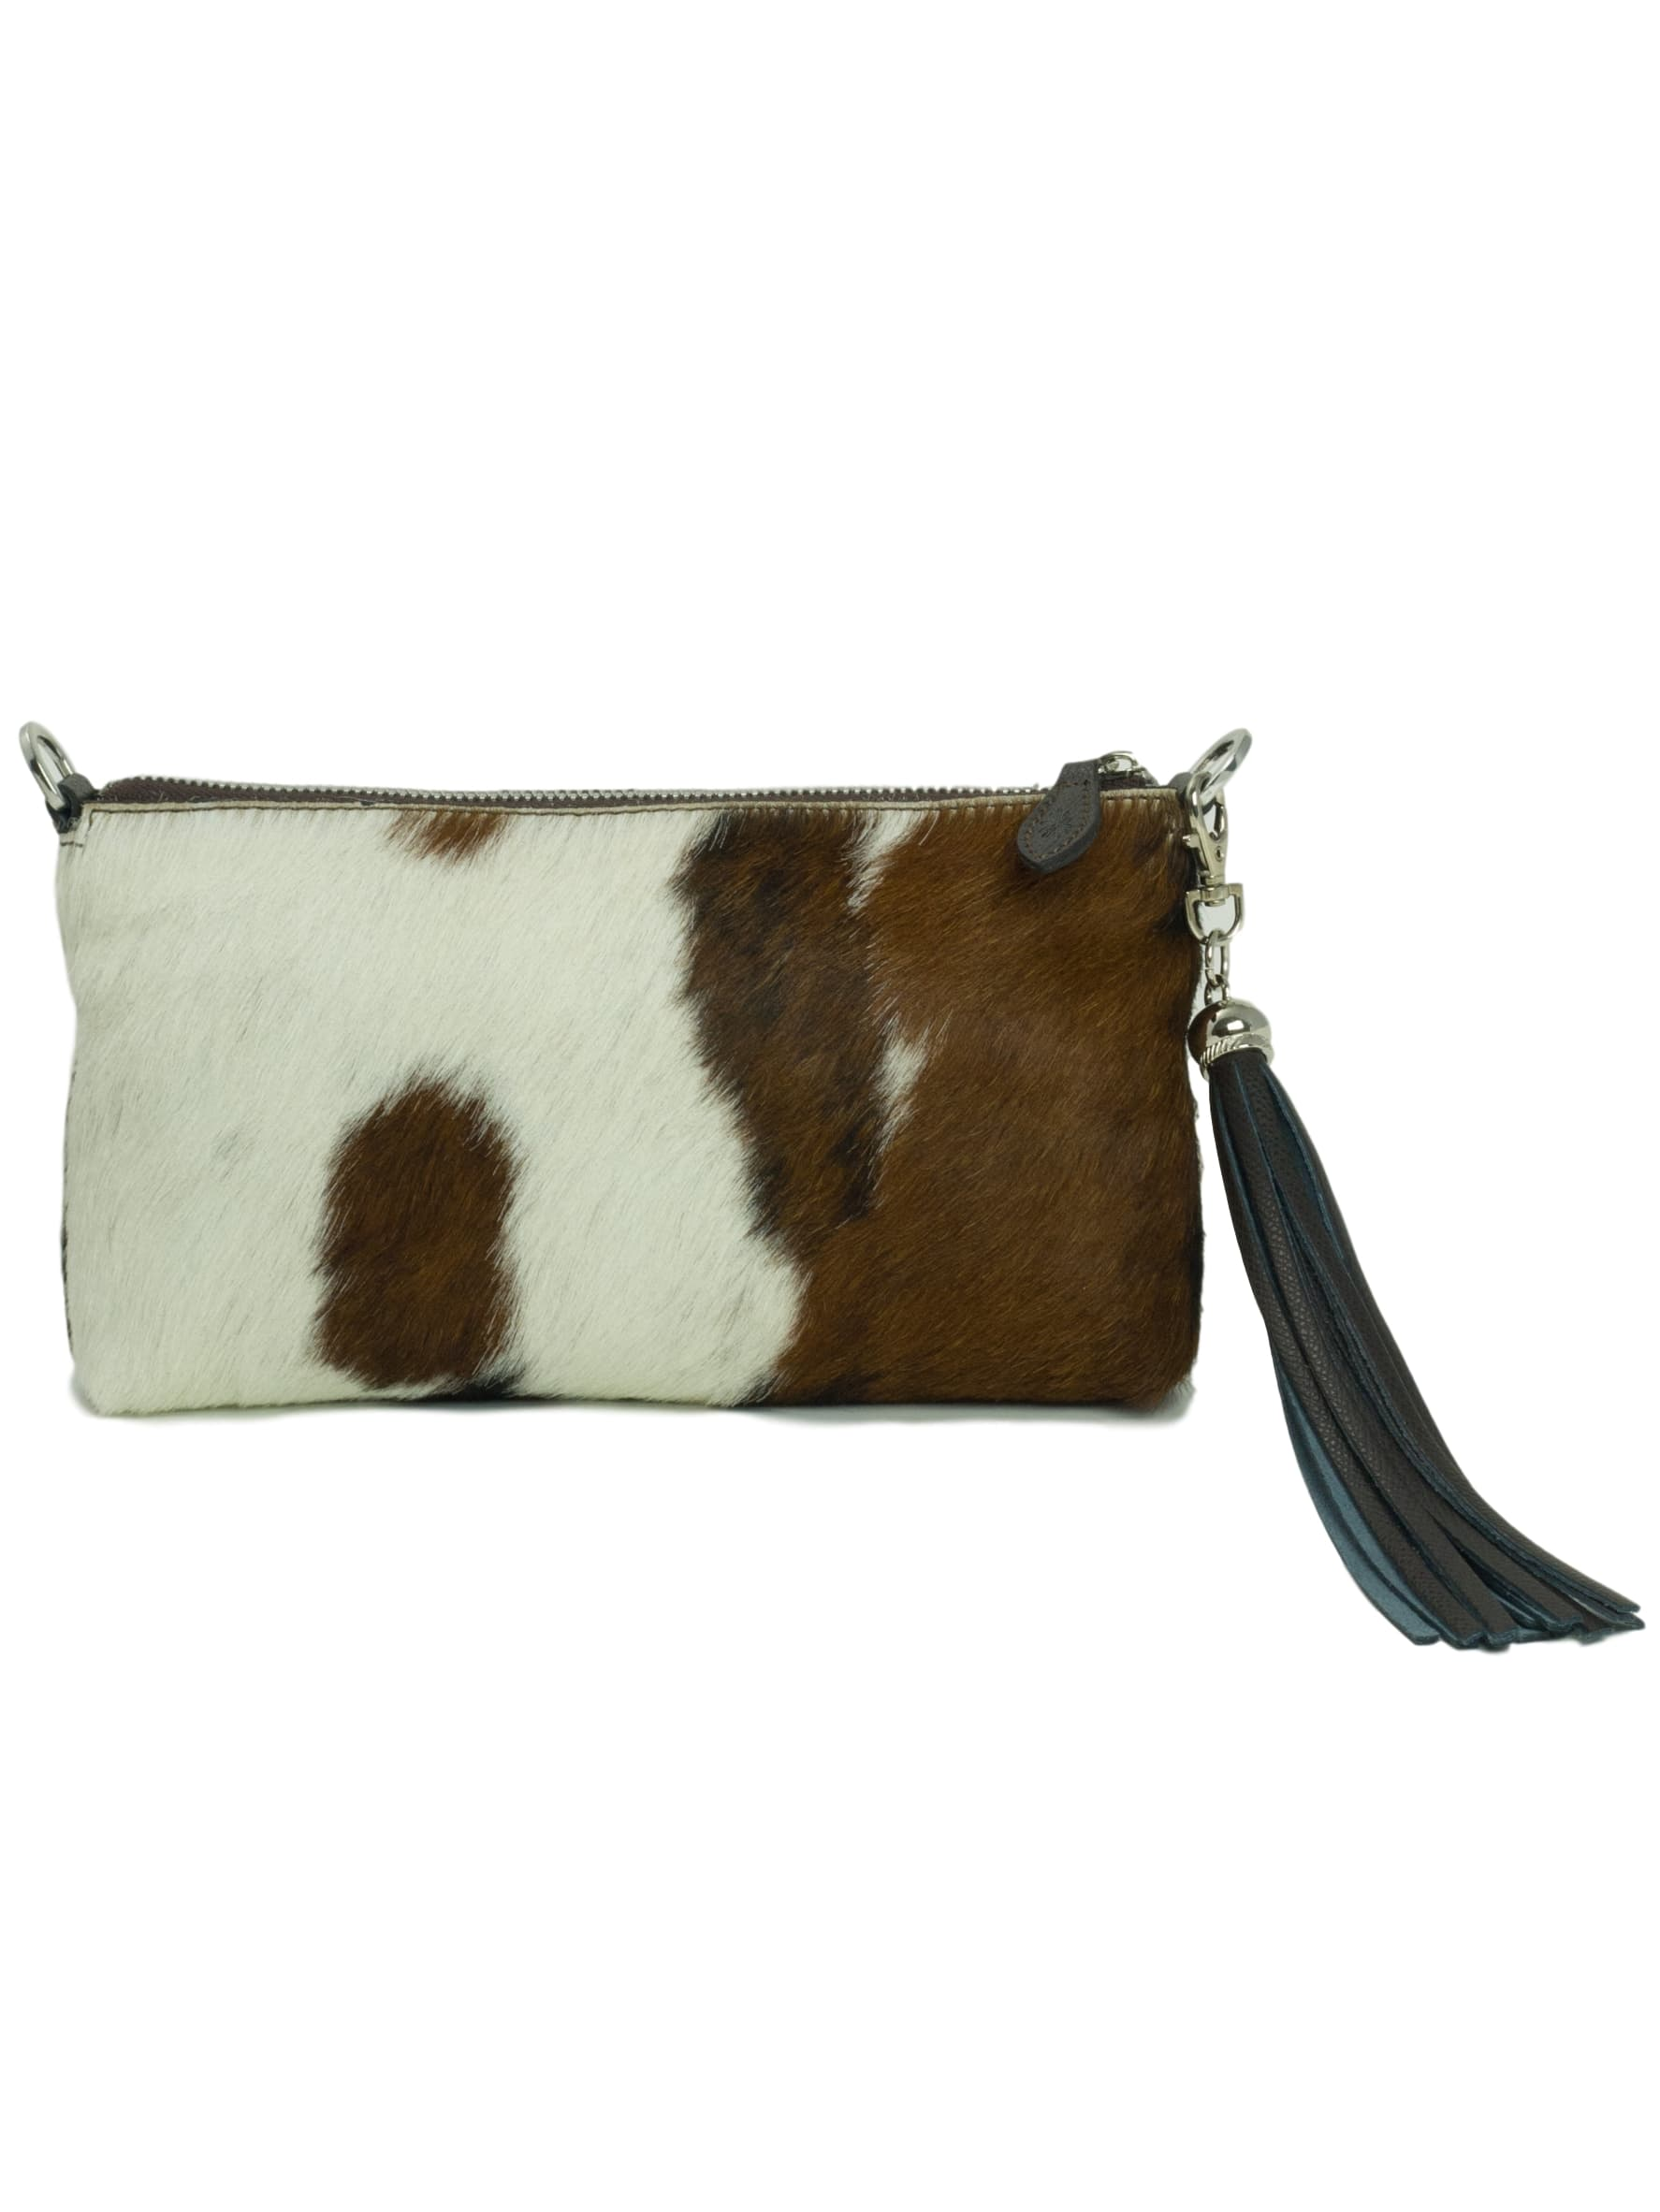 Clutch bag - brown cowhide furry Forget Me Not